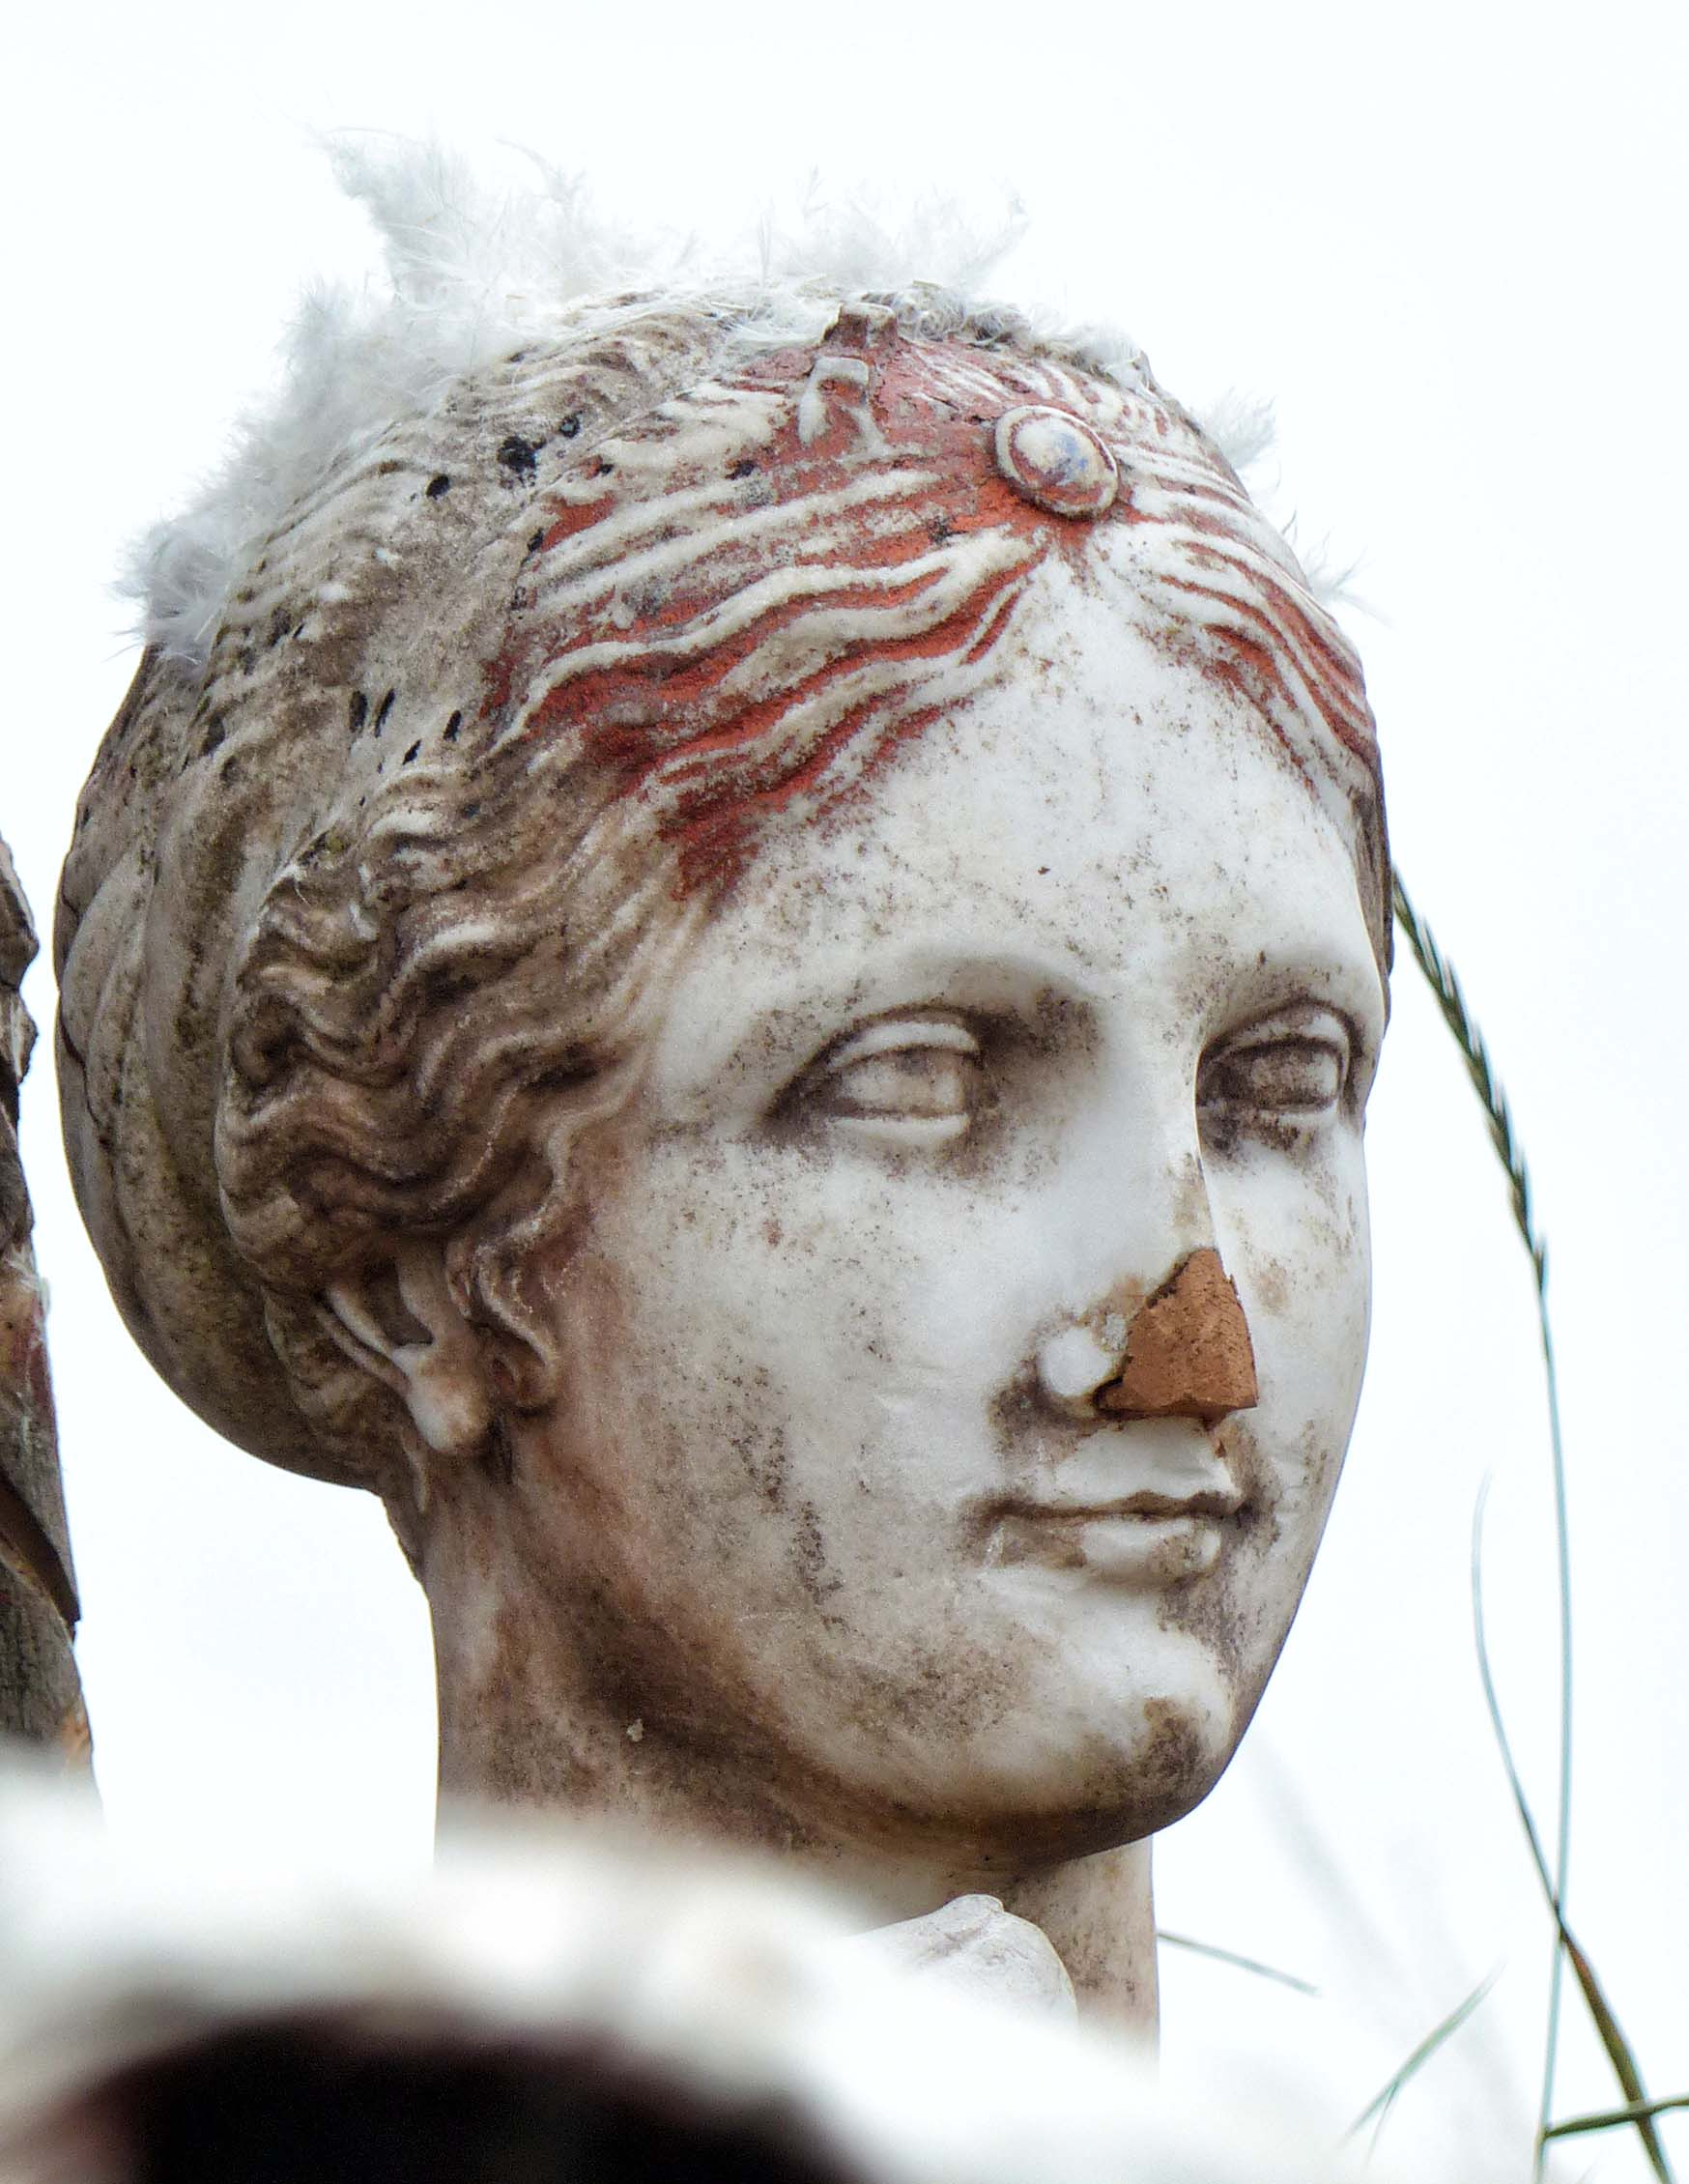 Girl's face from a statue with chipped nose